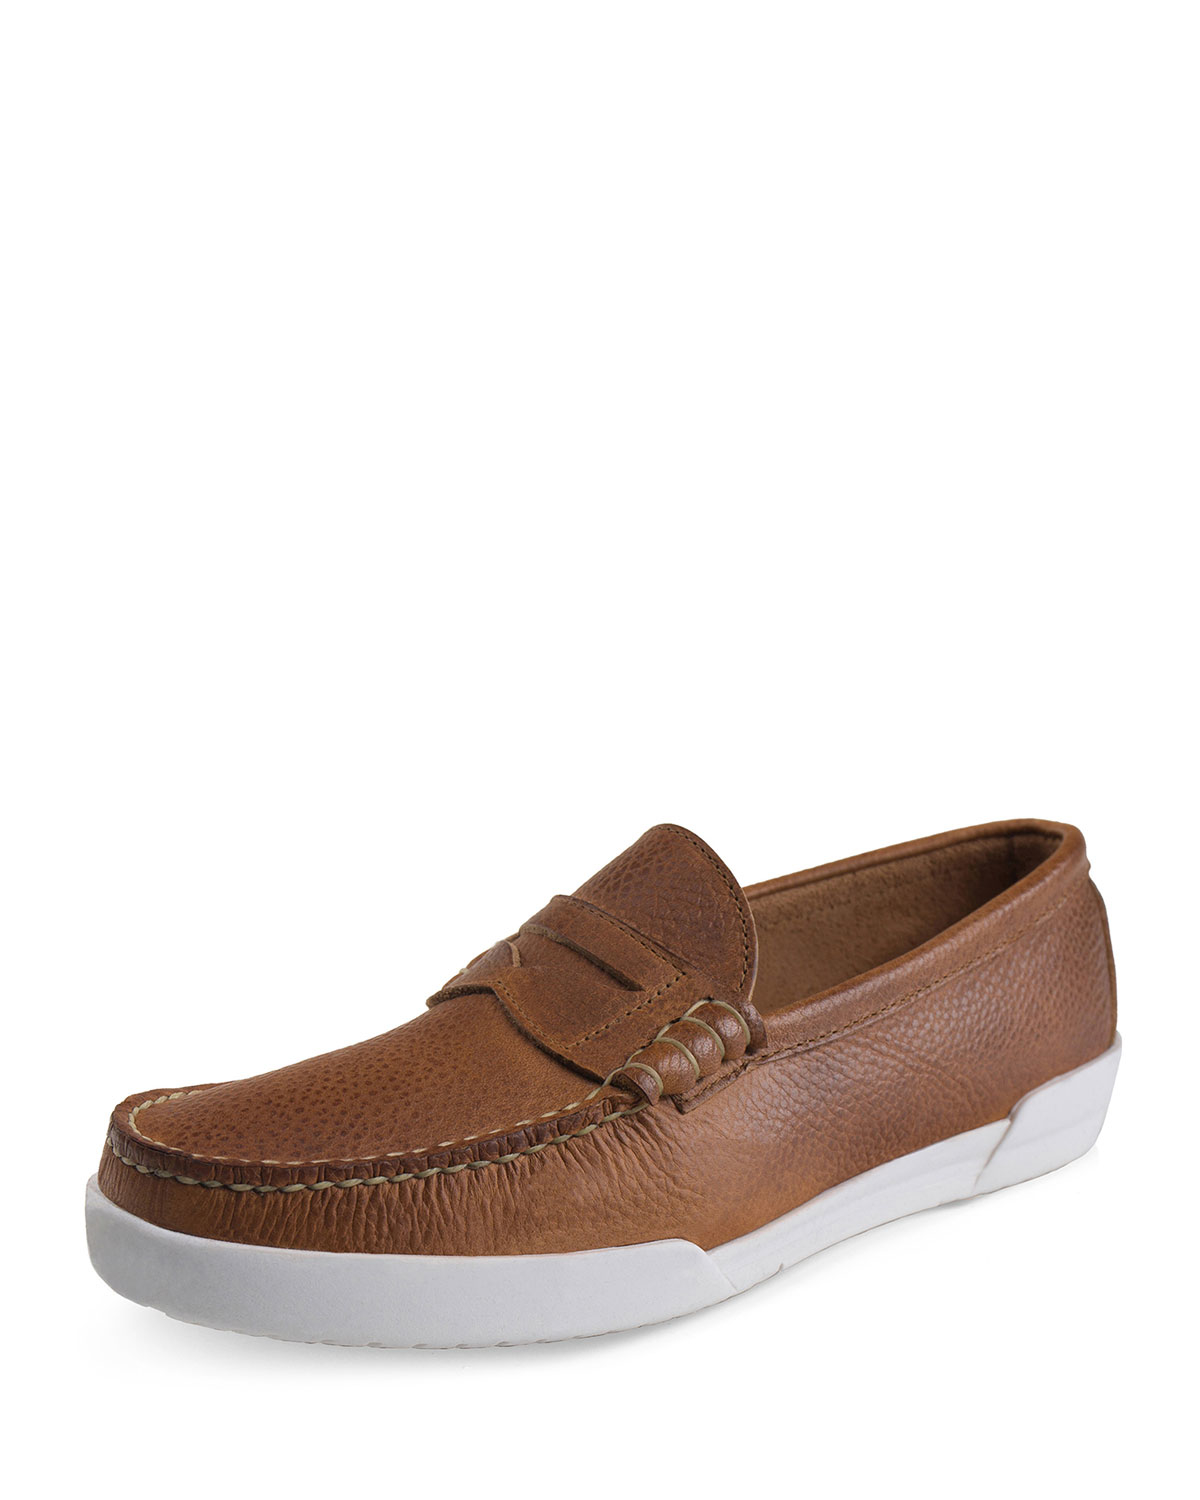 Buy men's Loafer shoes from Charles Tyrwhitt of Jermyn Street, London. Fine leather and quality construction mean our shoes last many years.